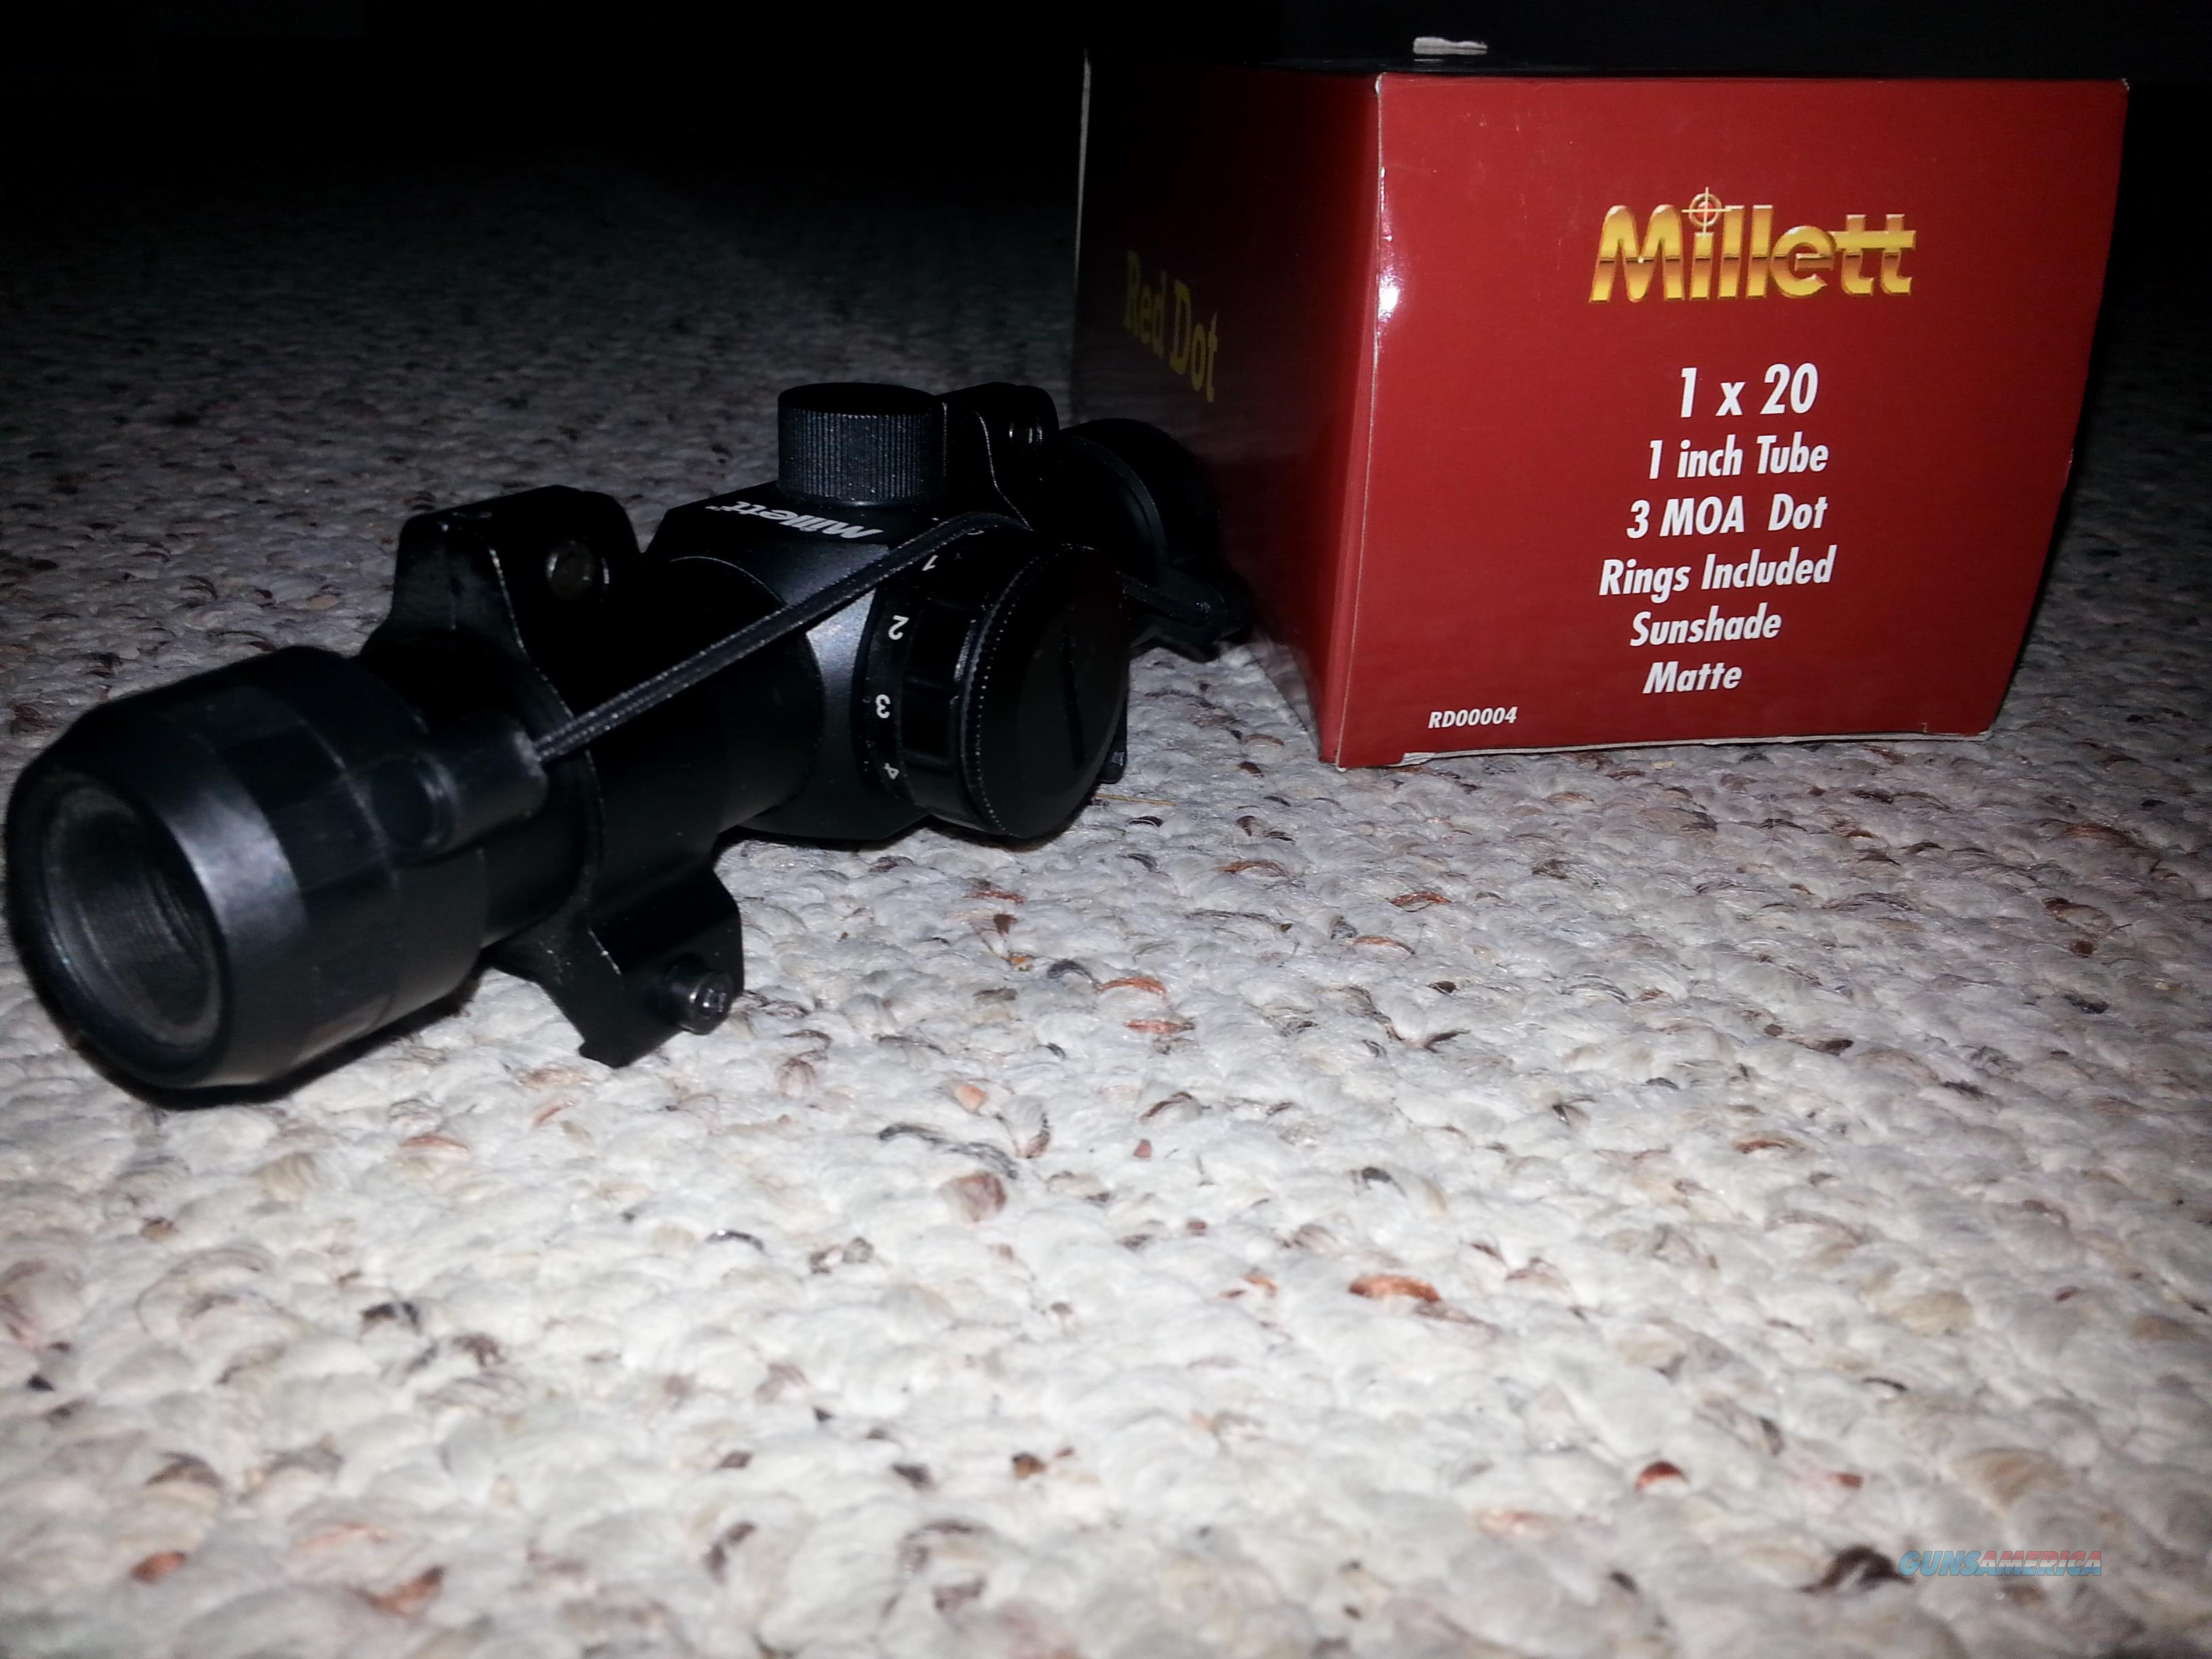 USED MILLETT 1X20 RED DOT 3MOA SCOPE RINGS INCLUDED FREE S/H  Non-Guns > Scopes/Mounts/Rings & Optics > Tactical Scopes > Red Dot